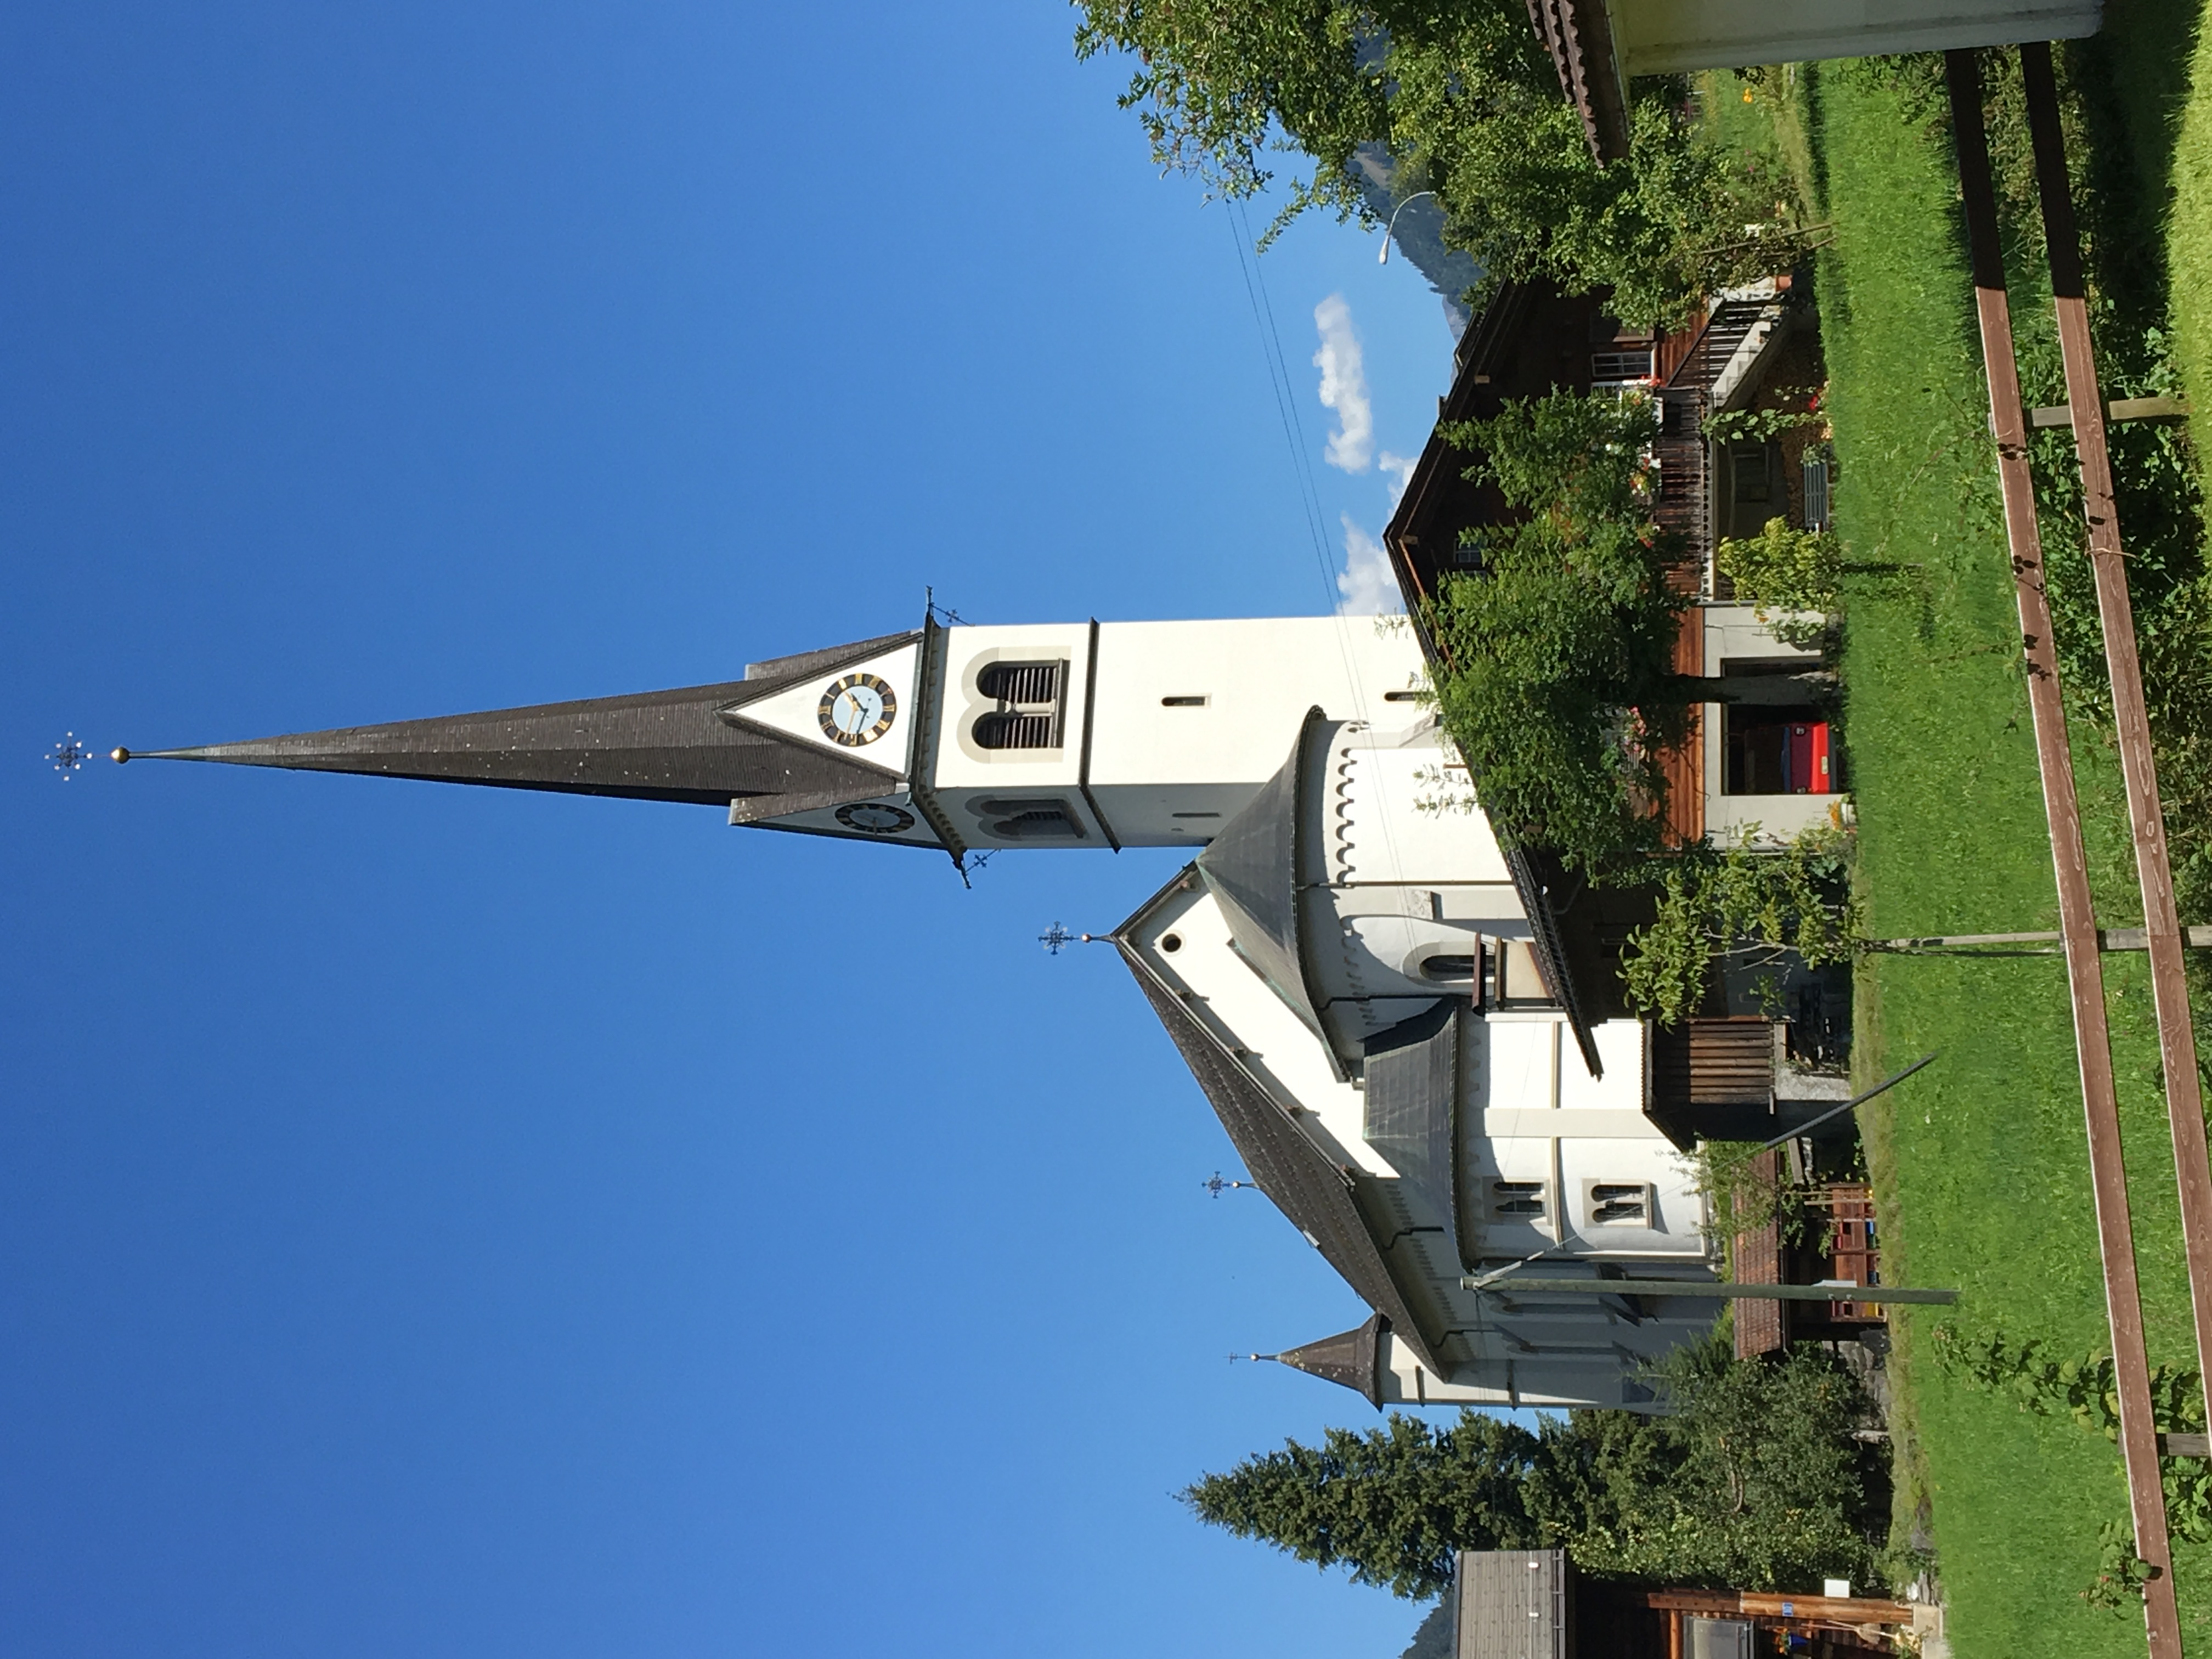 Linthal Catholic Church